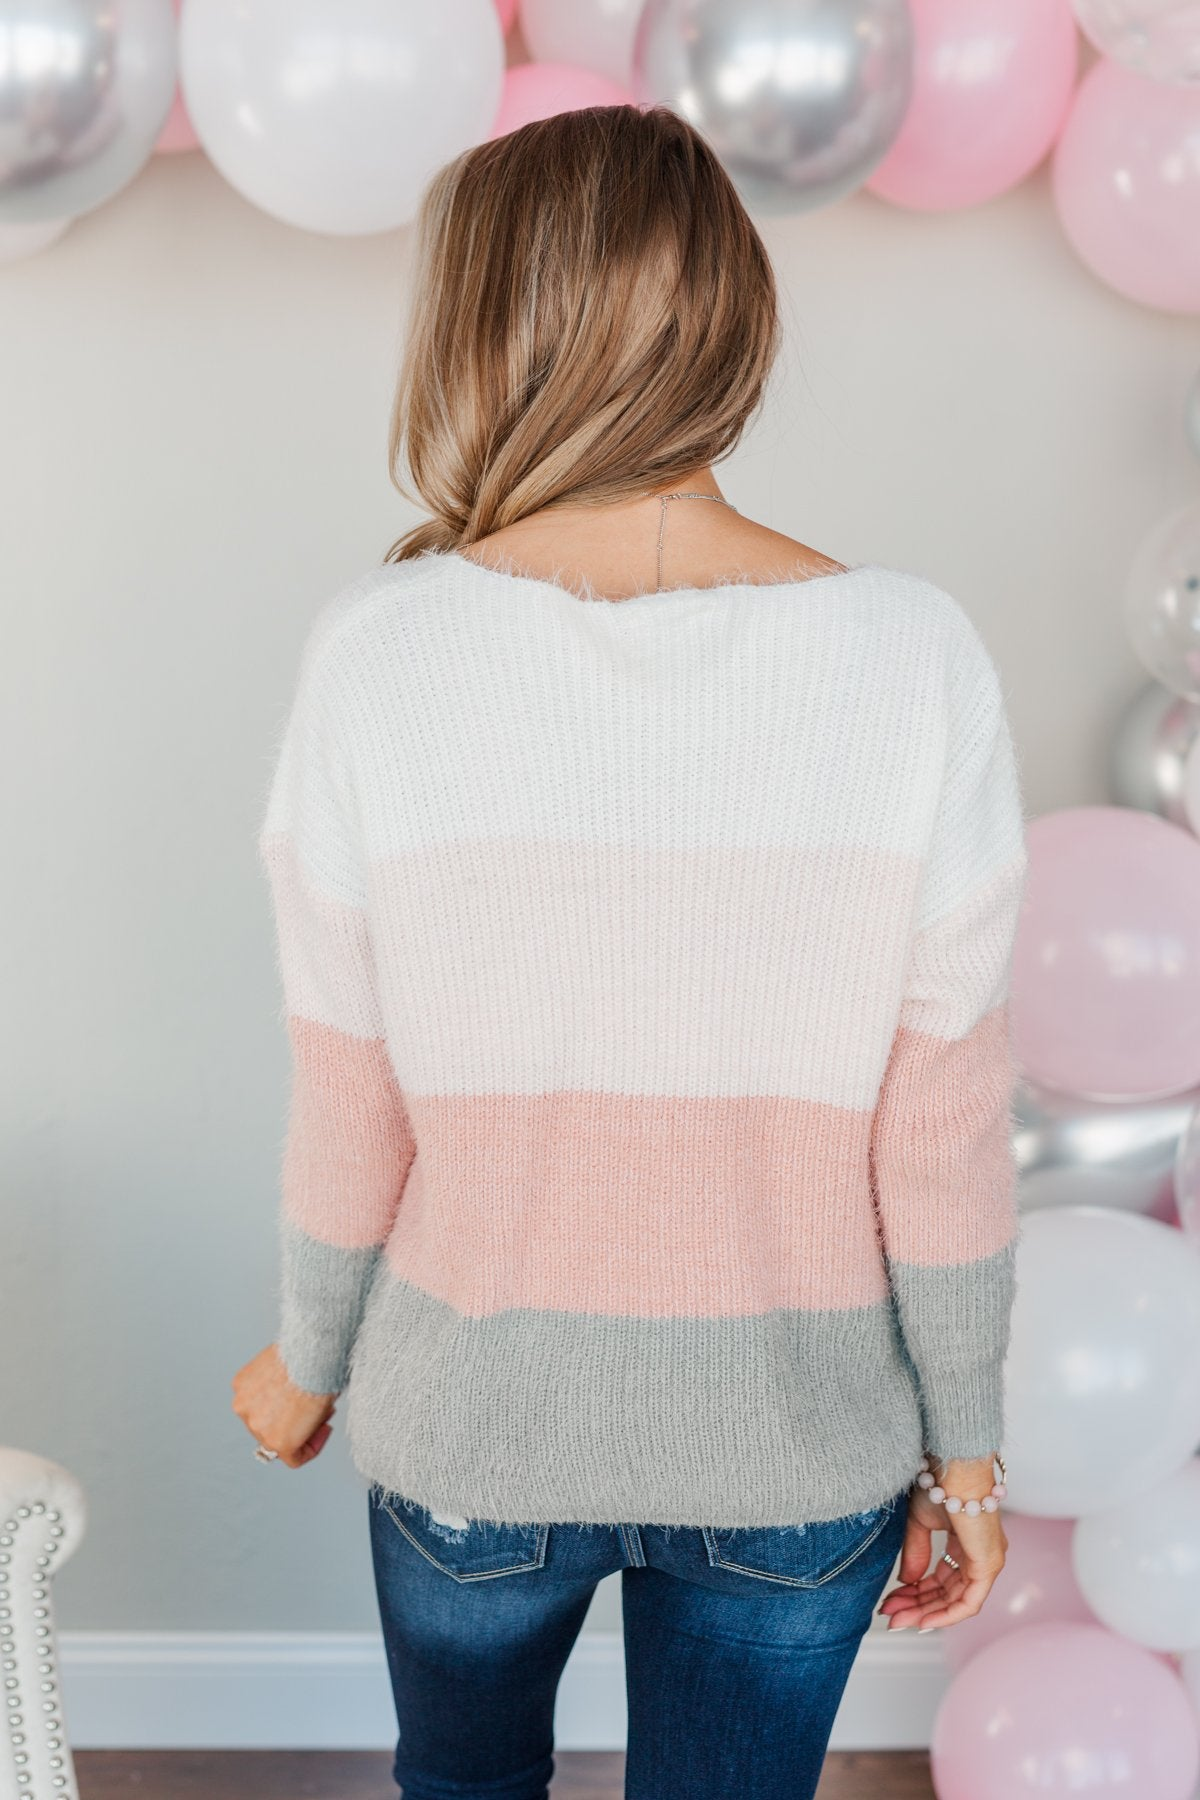 My Reason Why Knit Sweater- Ivory, Pink & Grey